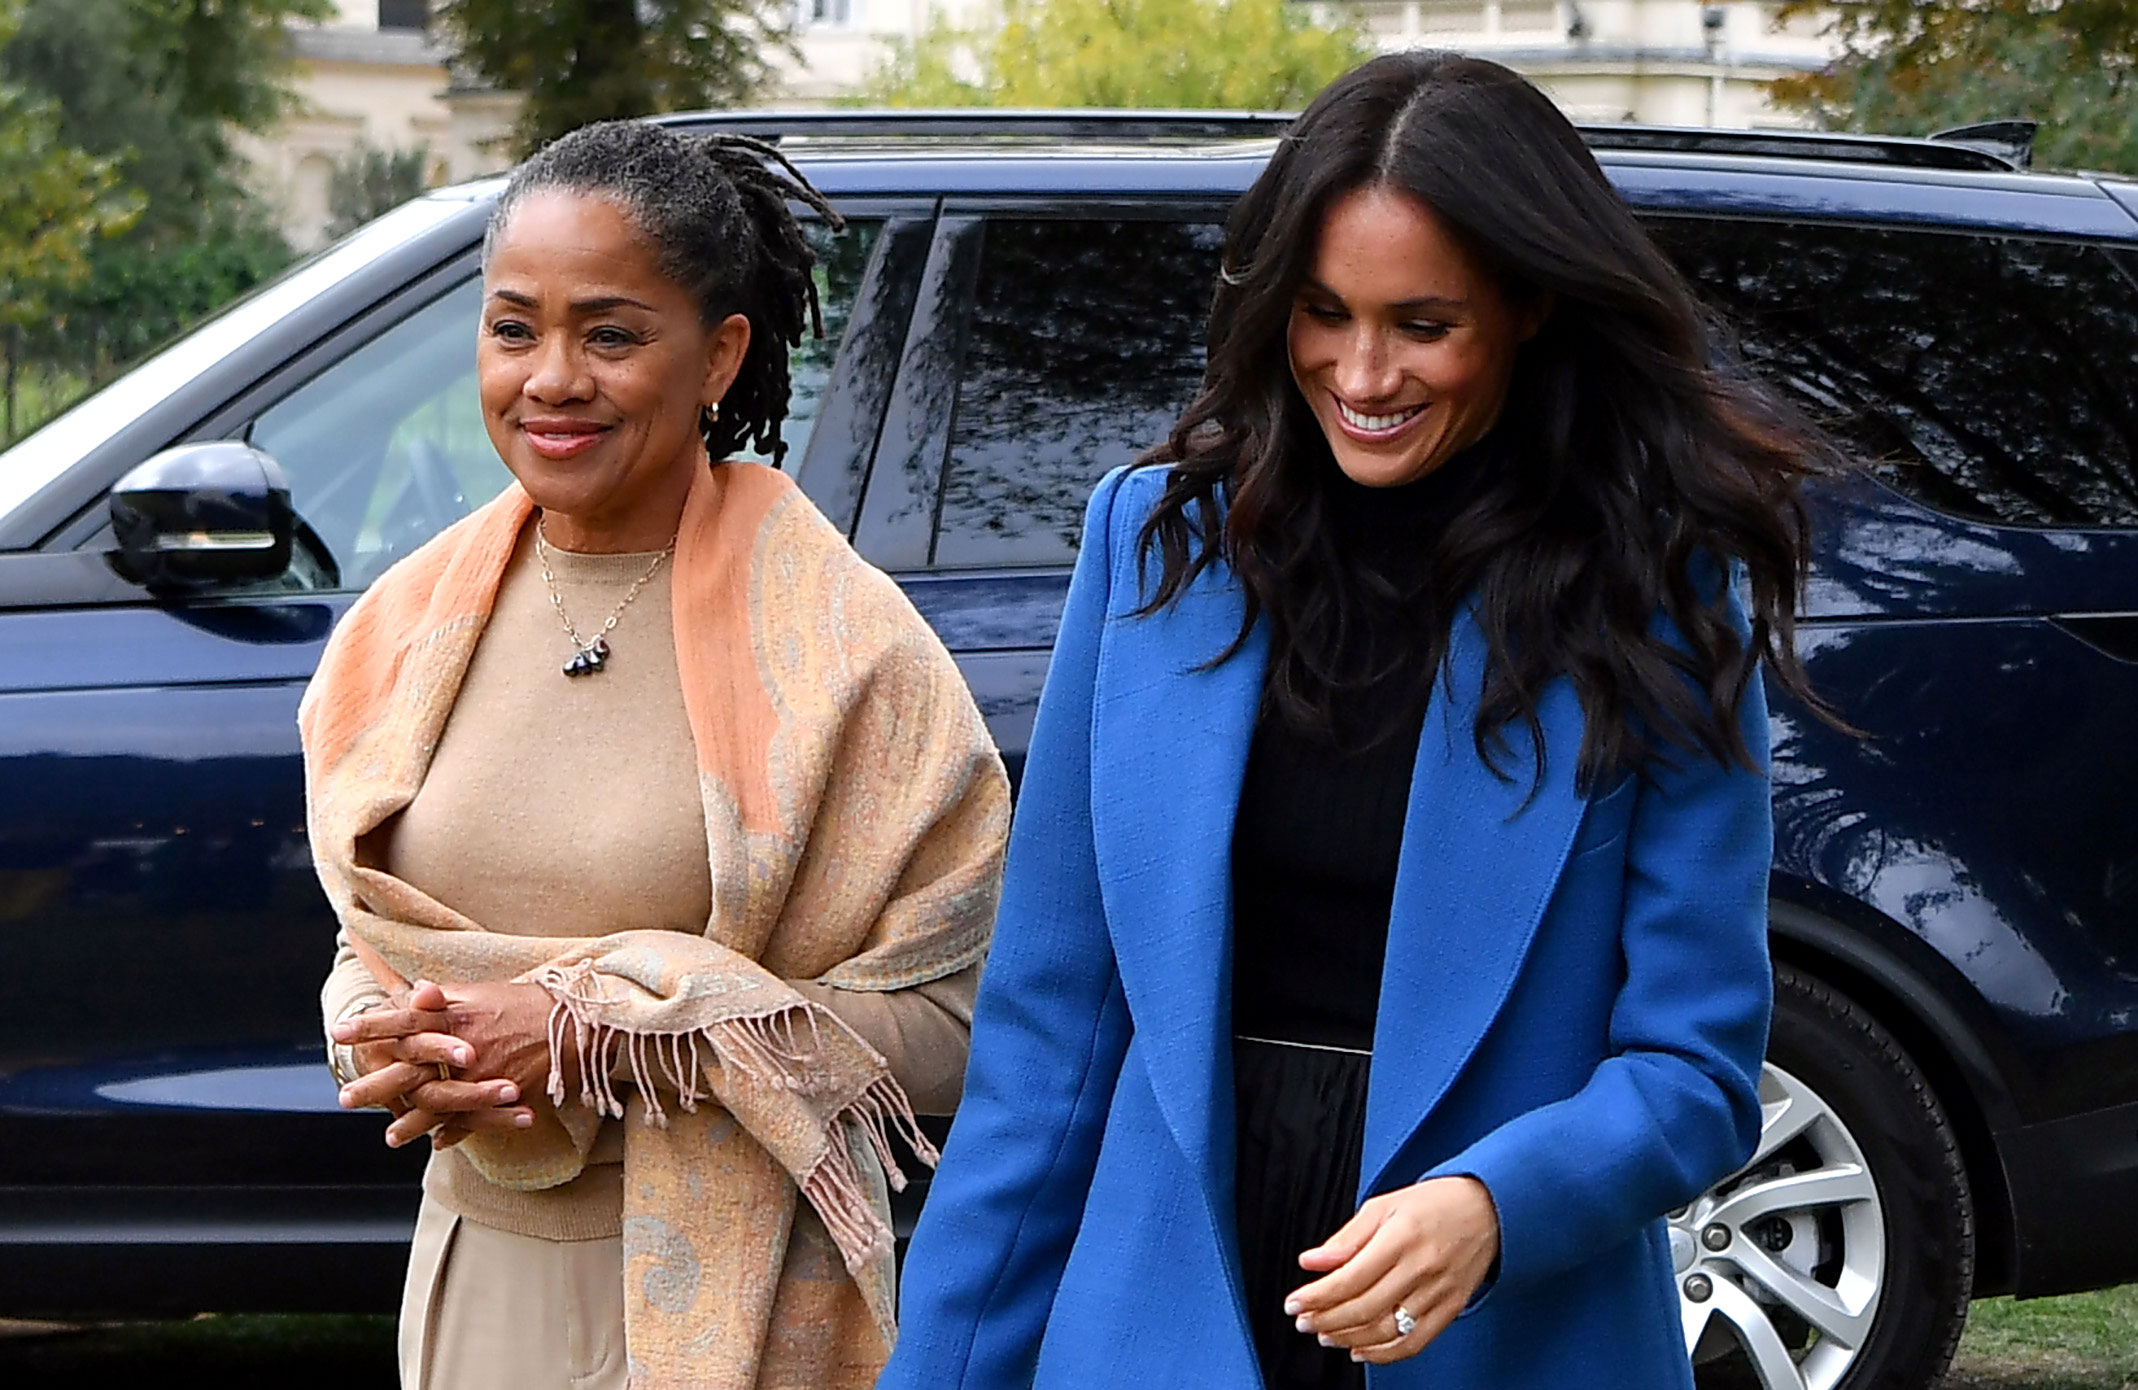 Duchess Meghan Mom Doria London Awaiting Royal Baby Arrival - Doria Ragland and Meghan Markle, The Duchess of Sussex, hosts an event to mark the launch of a cookbook with recipes from a group of women affected by the Grenfell Tower fire at Kensington Palace, London, UK, on the 20th September 2018.